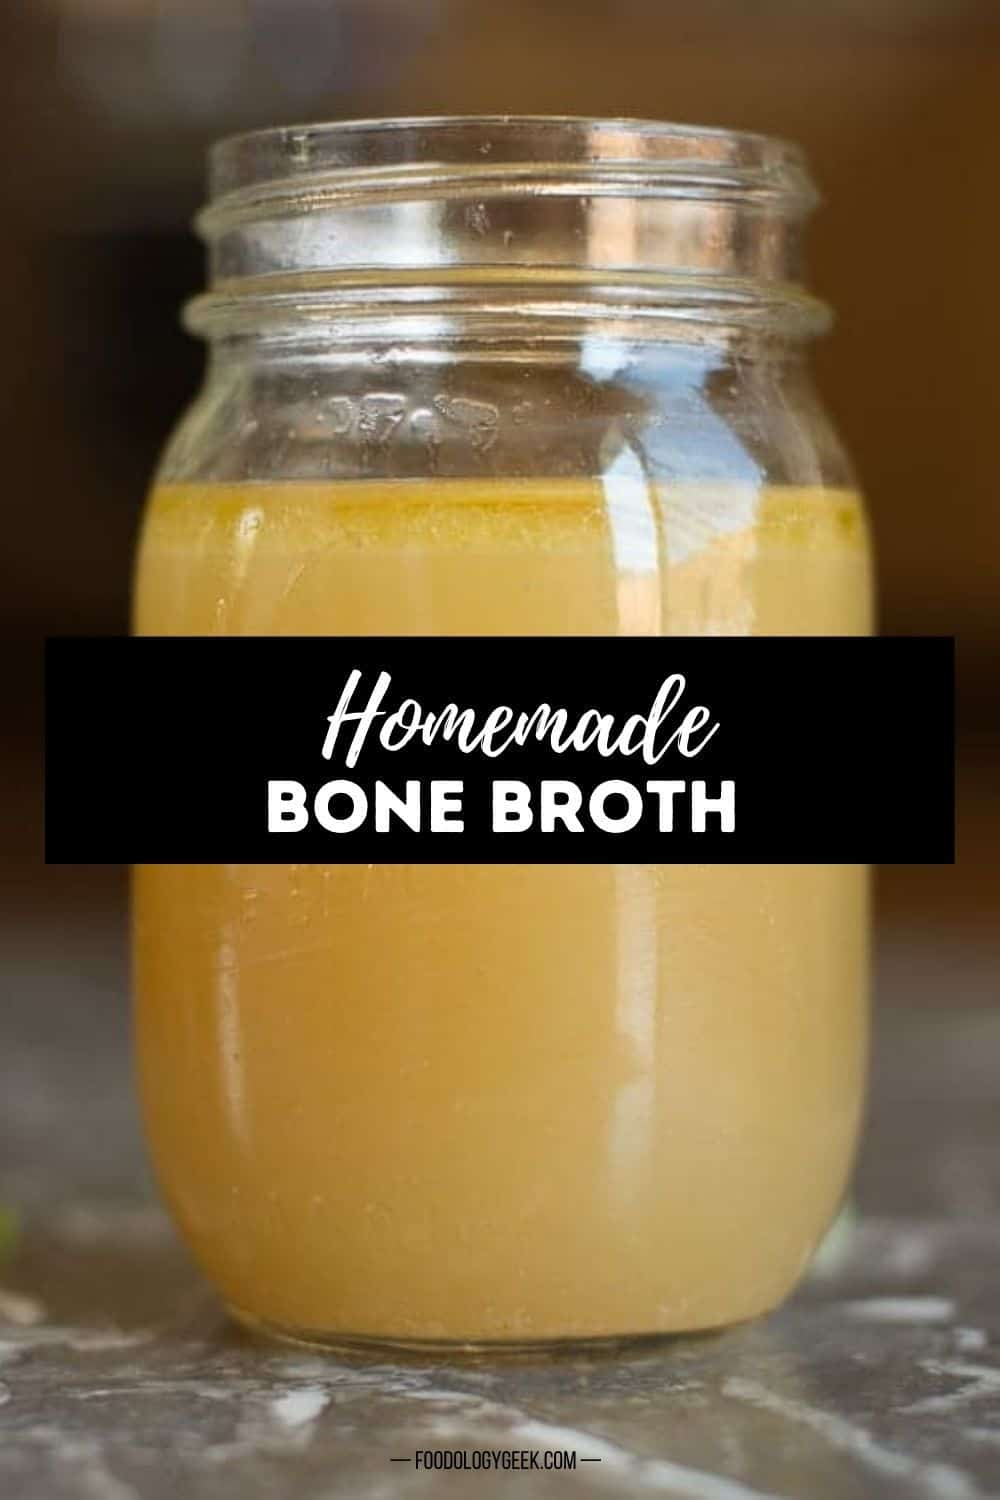 Bone Broth is a magic elixir! Not only is it good for you, but it's also delicious. Anytime I make a roast chicken I use the leftovers to make this nutritive broth recipe. Sip it alone or use it as a base for soup and stew. I always have a surplus of extra broth in the freezer.